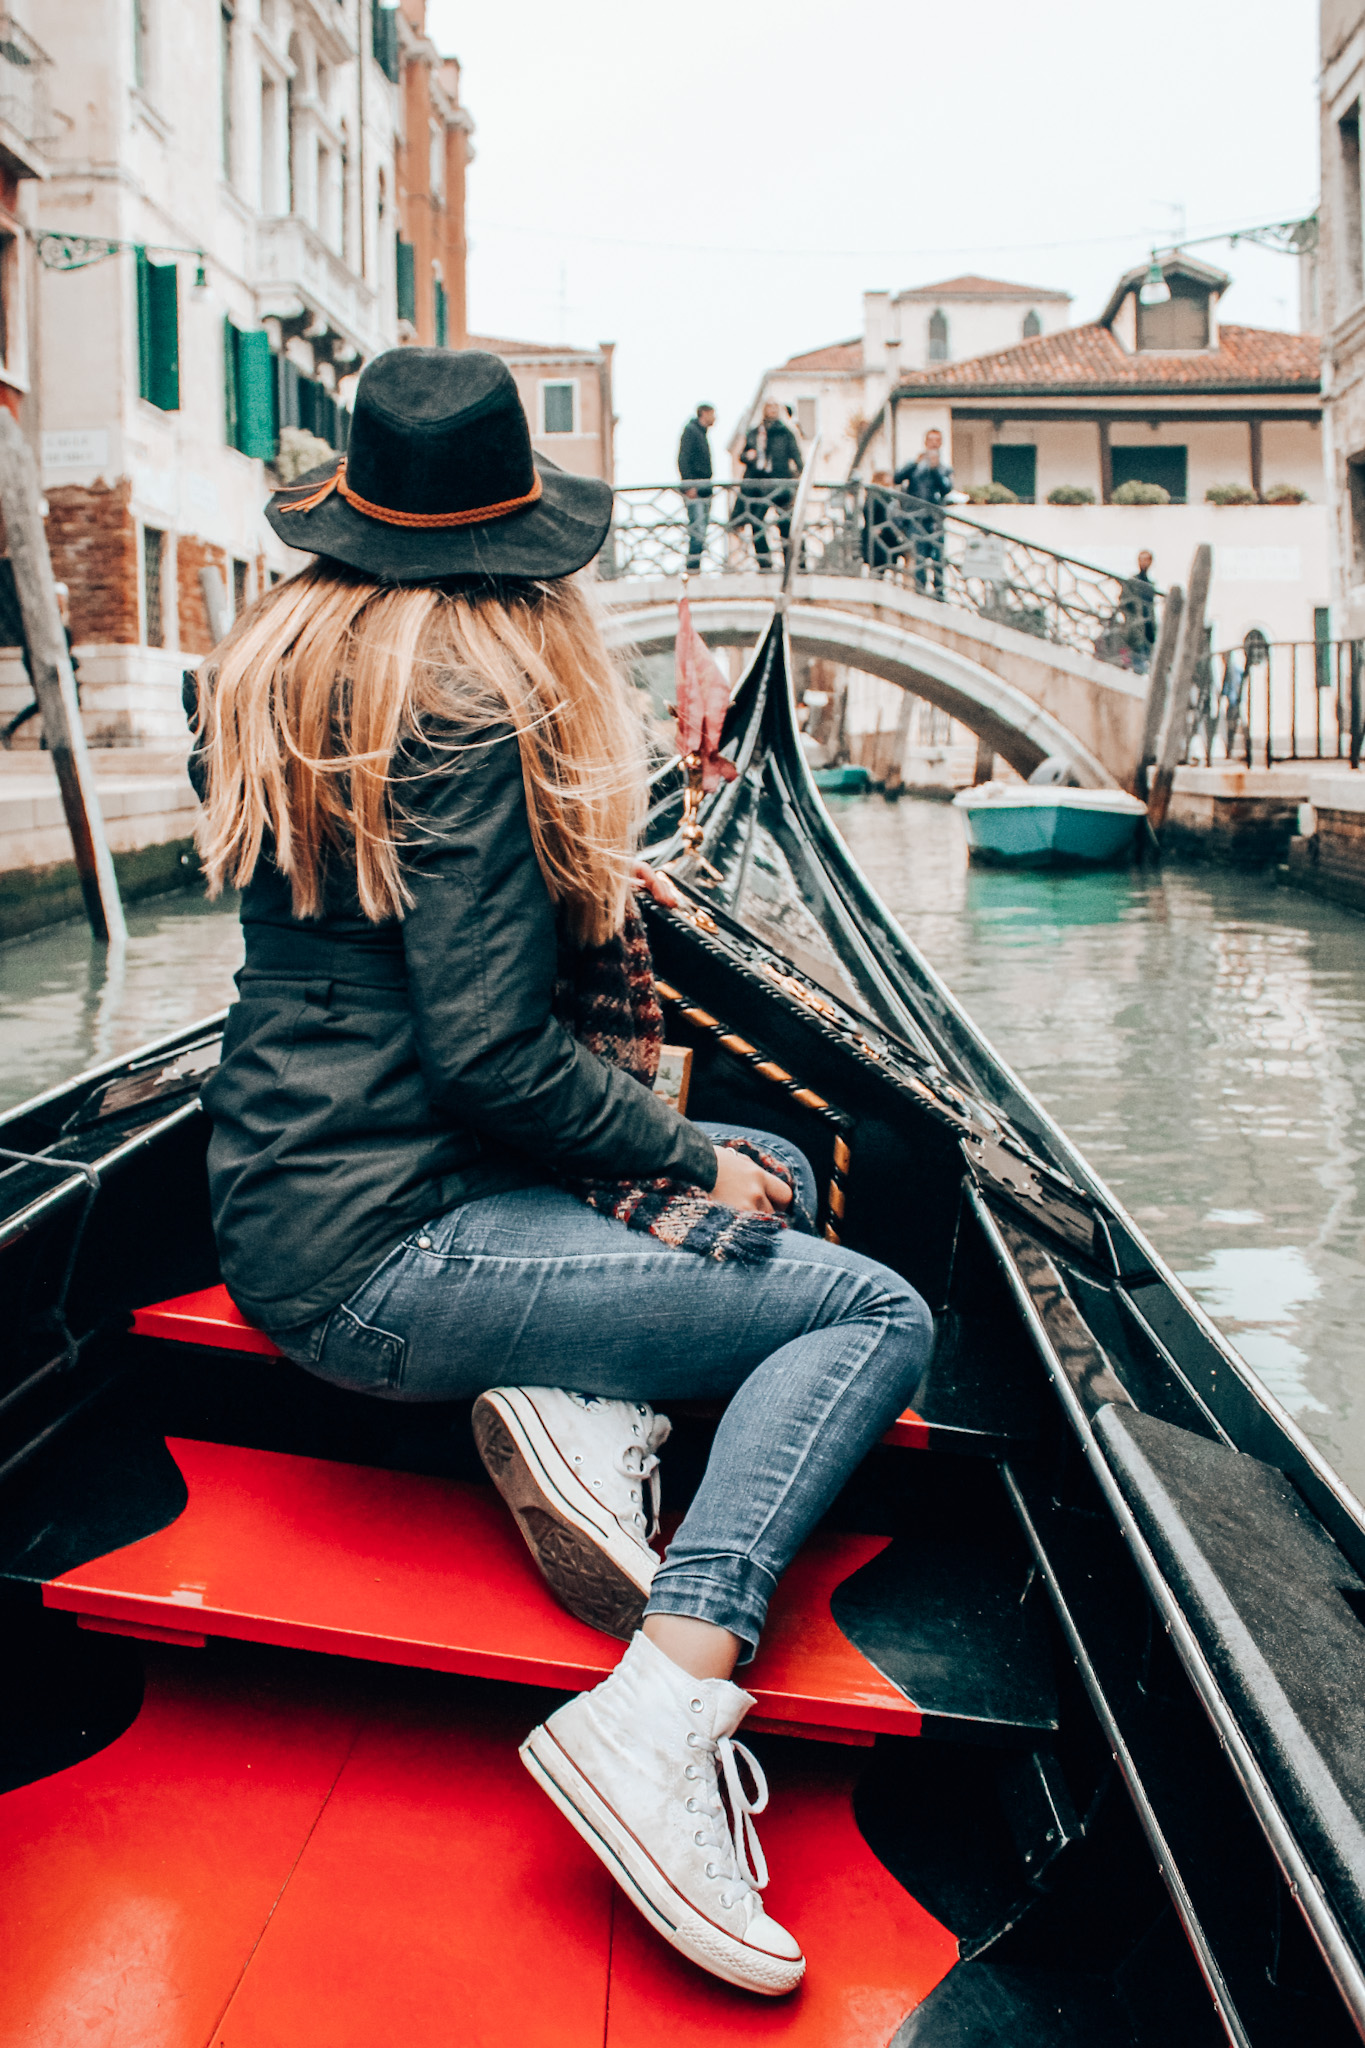 Girl poses on gondola in Venice, Italy wearing a black hat and jacket while studying abroad in Europe